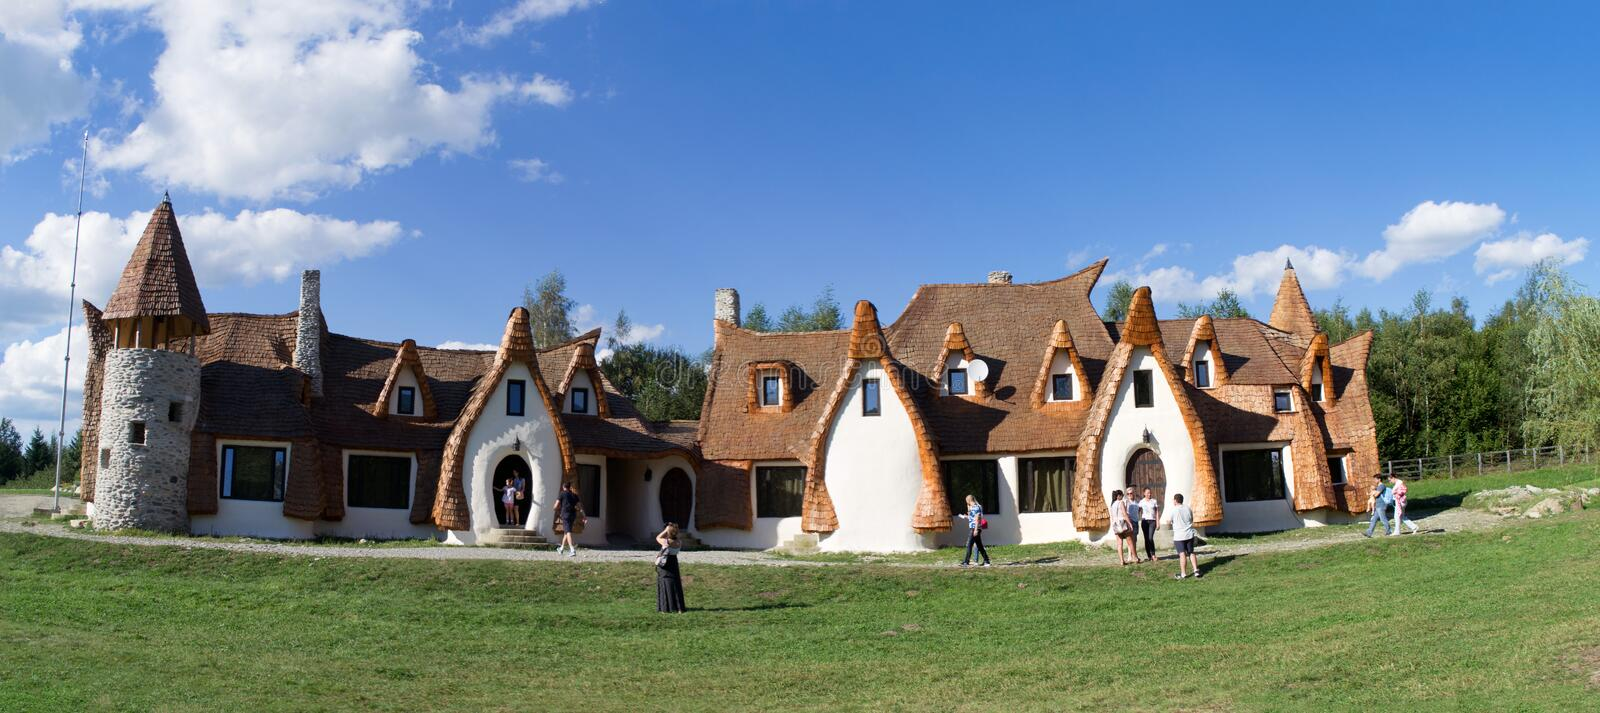 Clay Castle, The Valley of the Fairies. (Castelul de Lut, Valea Zanelor), Transylvanian Hobbit hotel built out of clay and sand stock photo